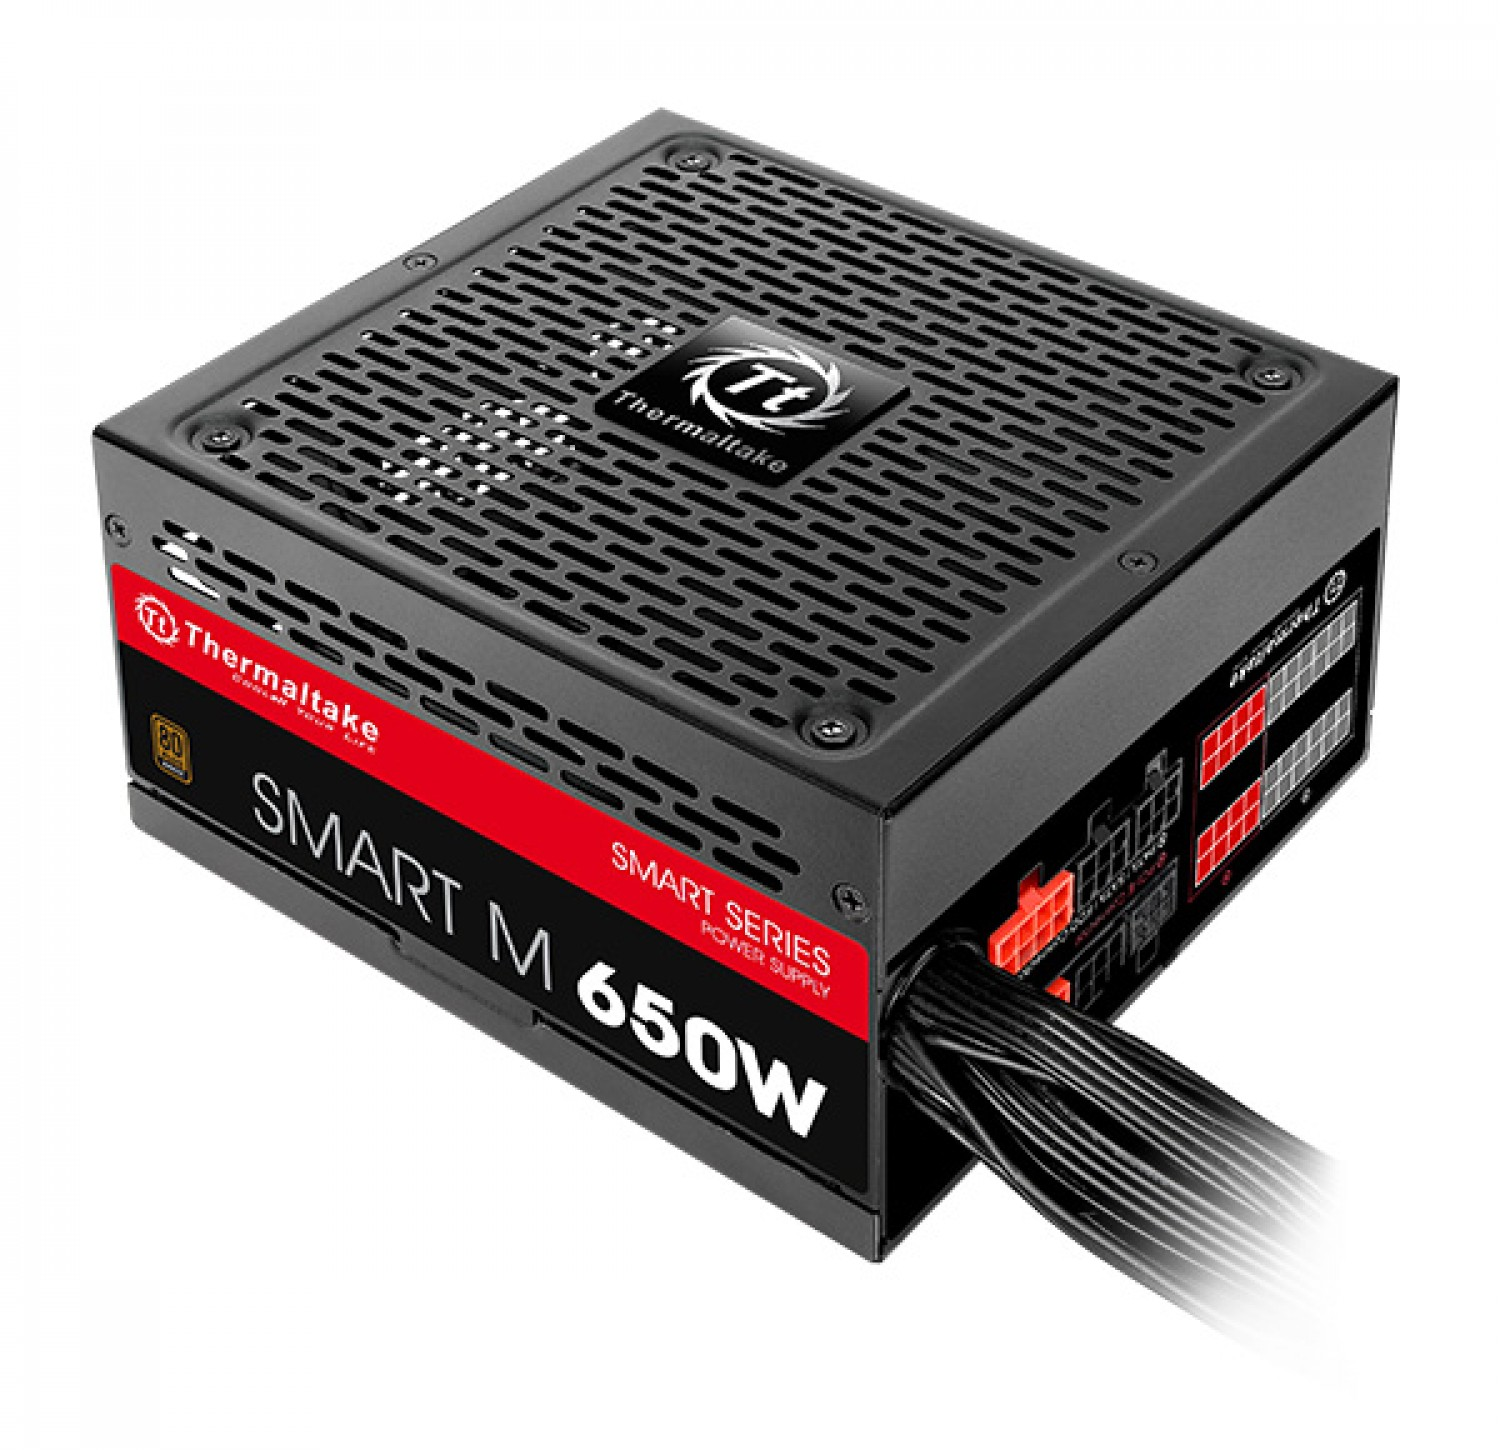 FUENTE GAMER THERMALTAKE SMART M650W PSU 80 PLUS